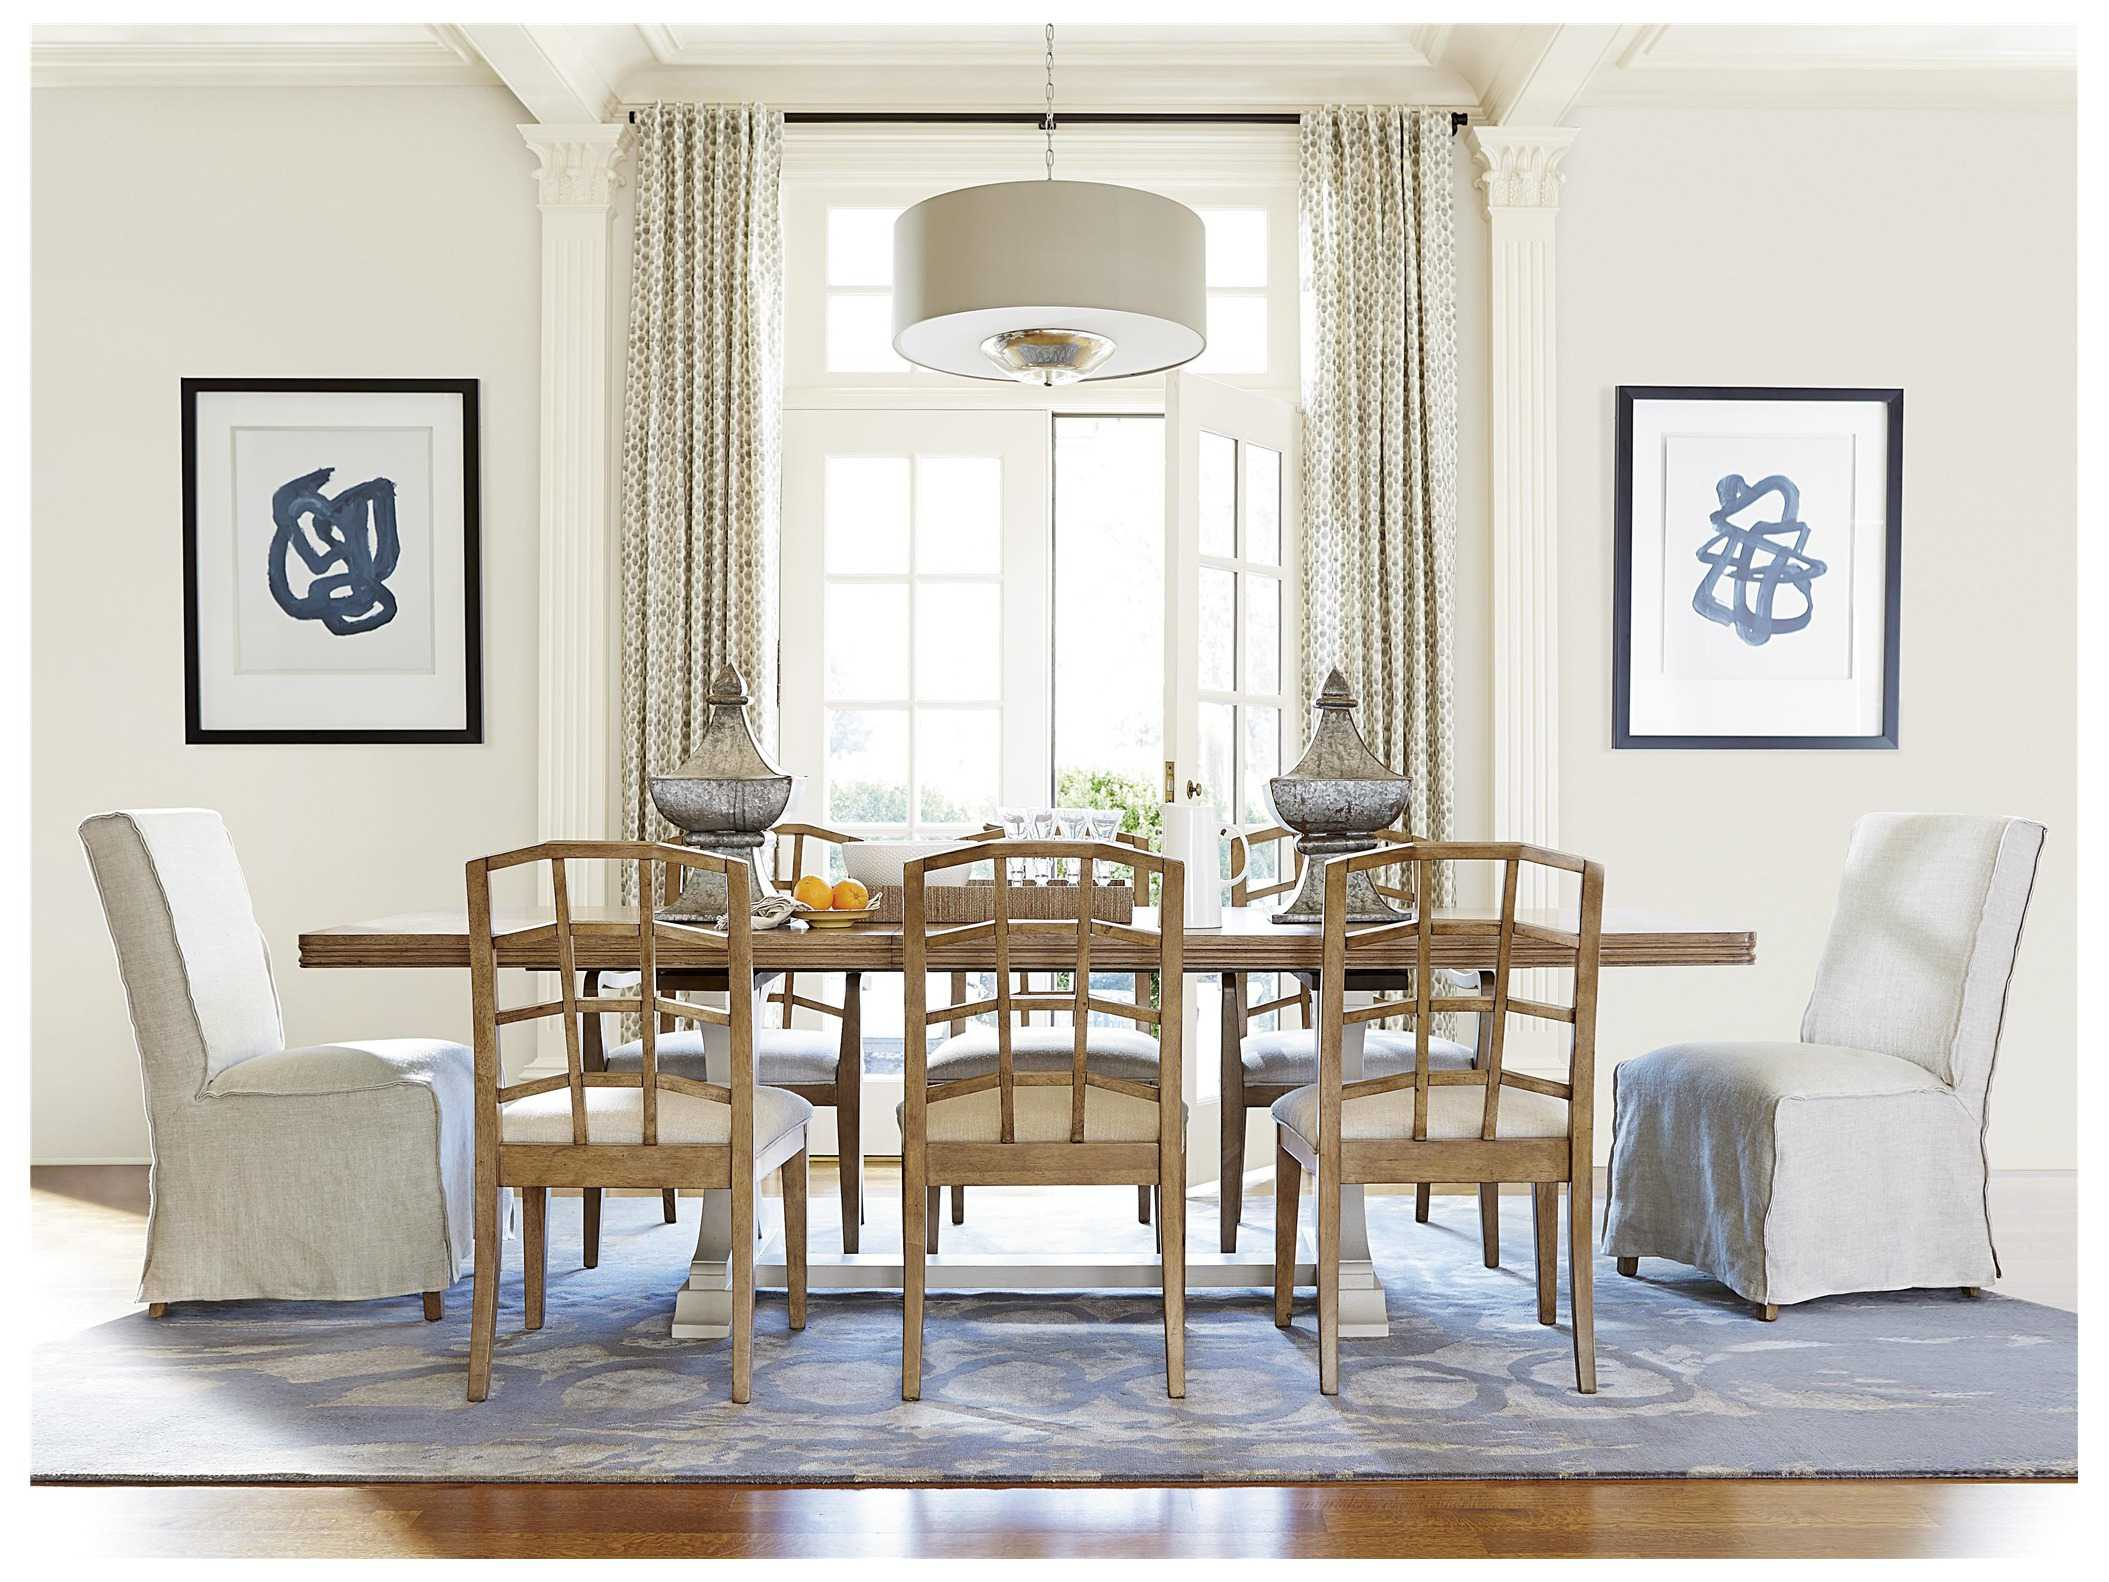 White painted dining room furniture